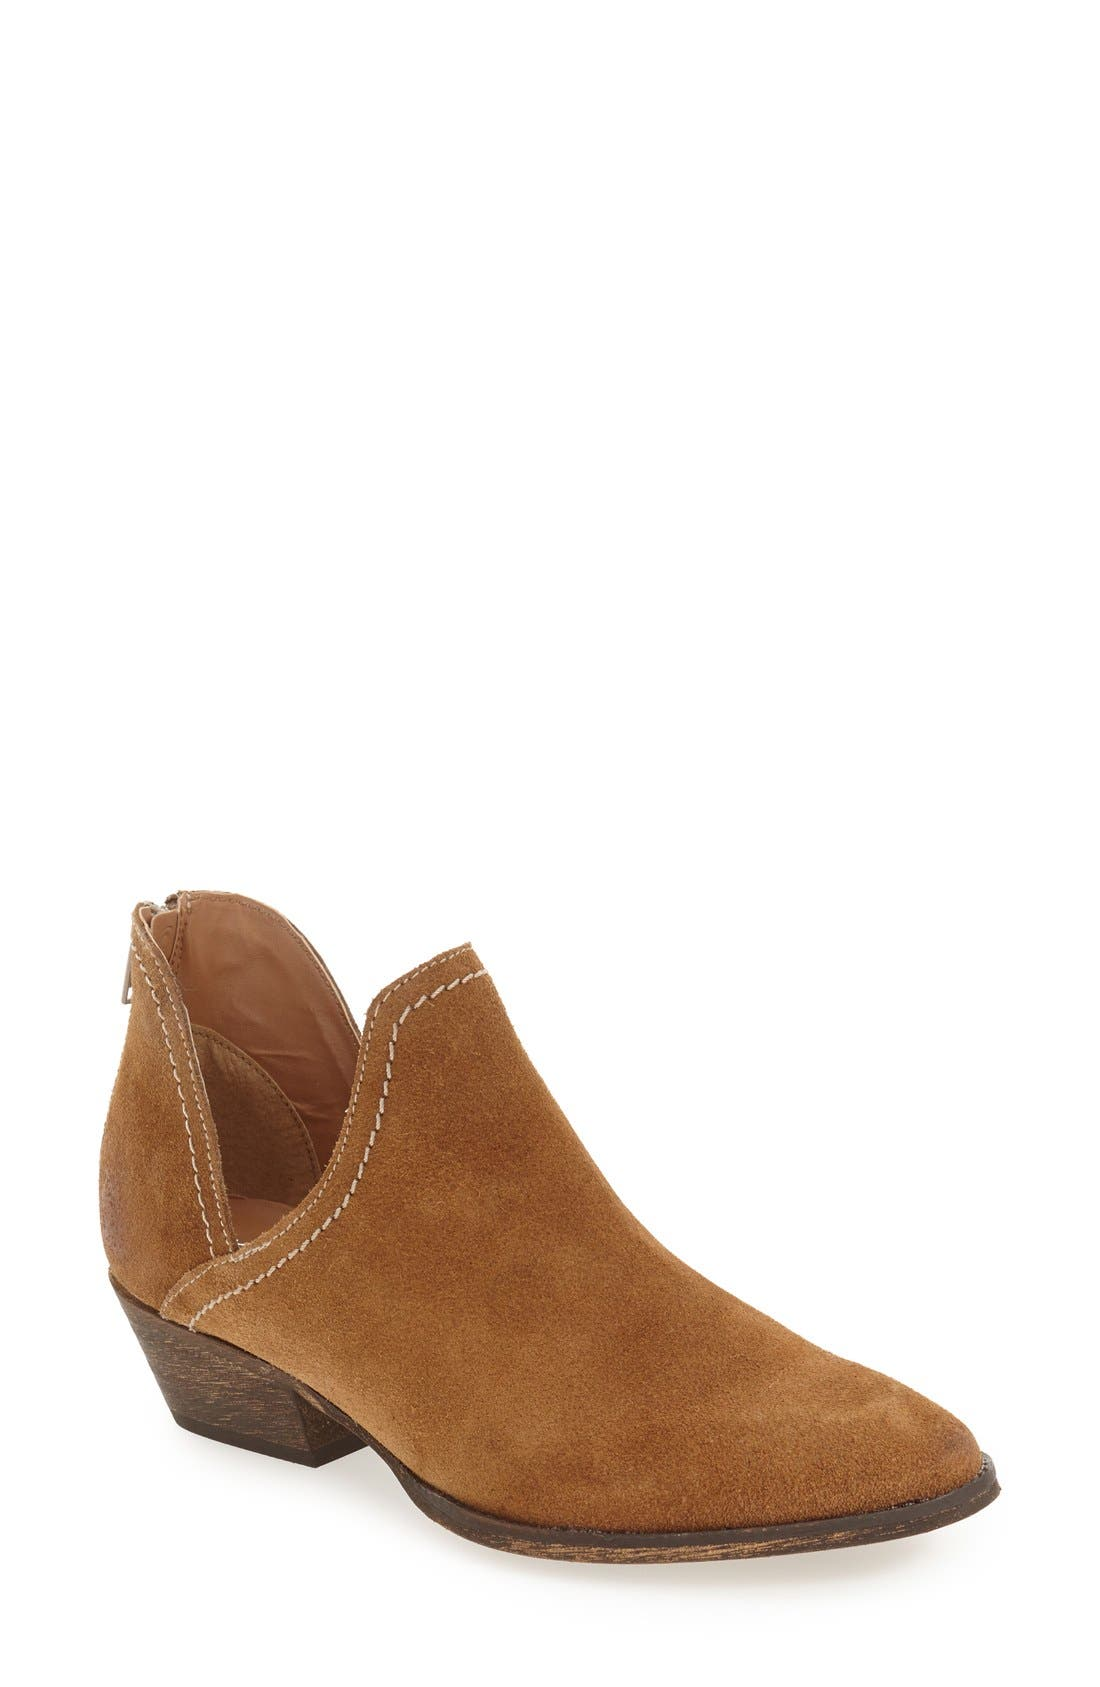 'Bai' Bootie,                         Main,                         color, Tobacco Suede